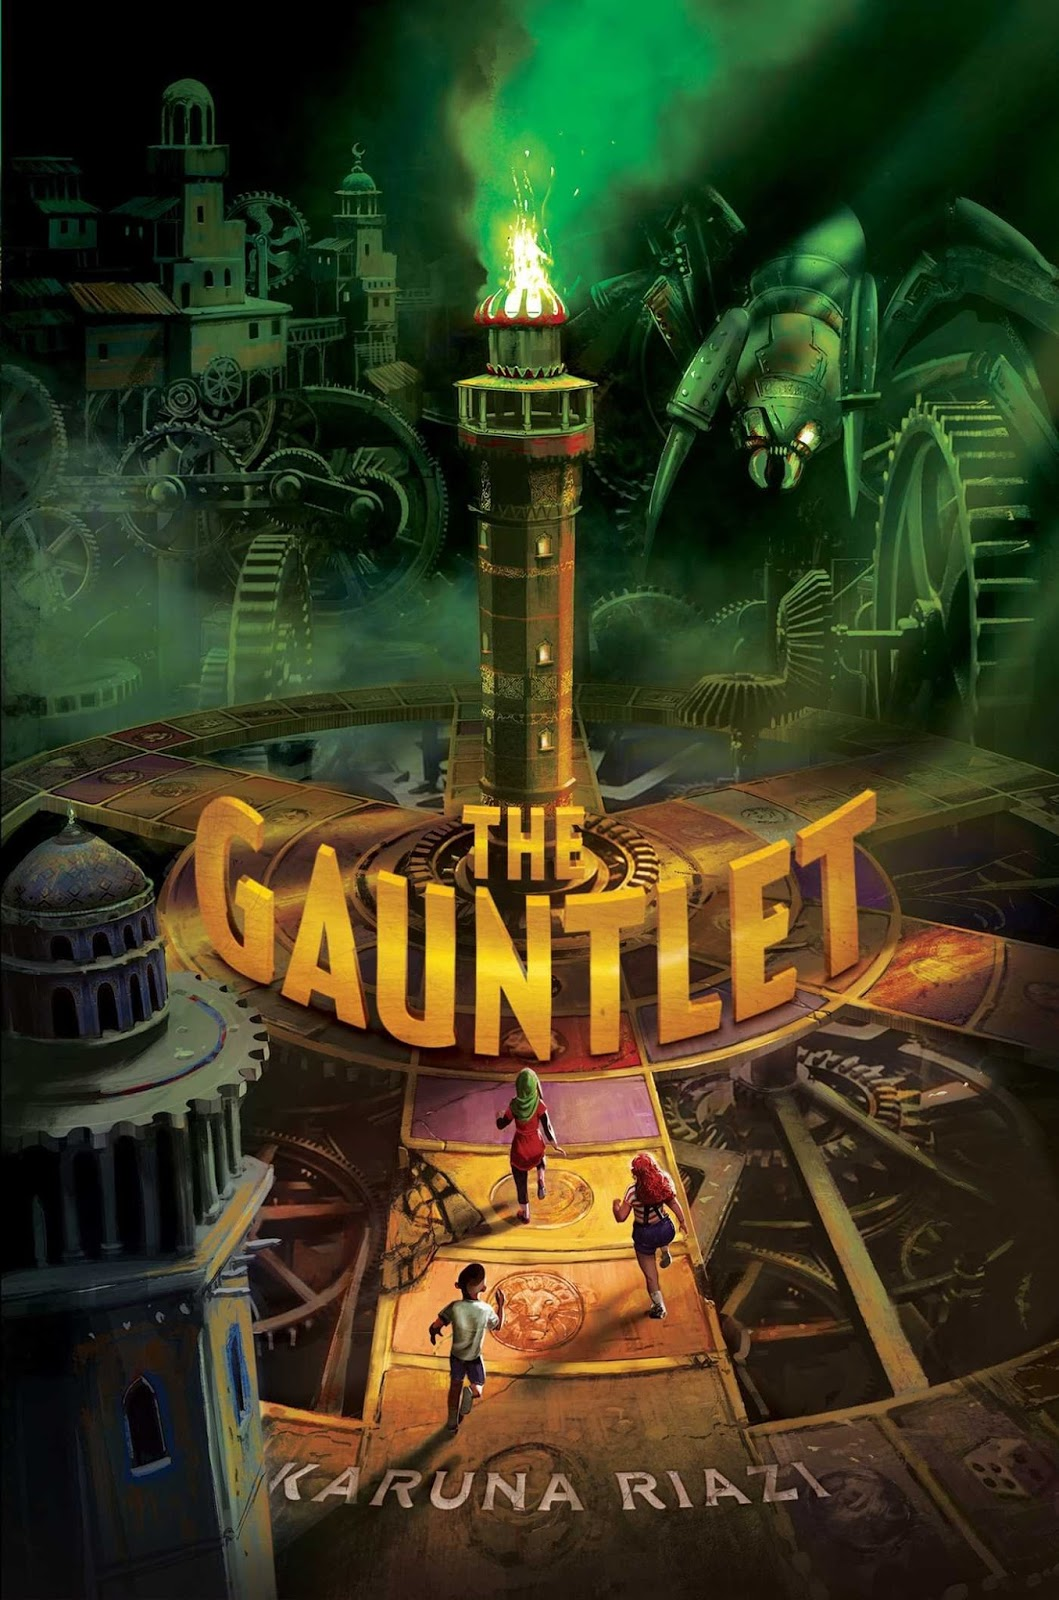 Mr Ripley's Enchanted Books: Middlegrade Book Picks March 2017  Us  Published Post Two